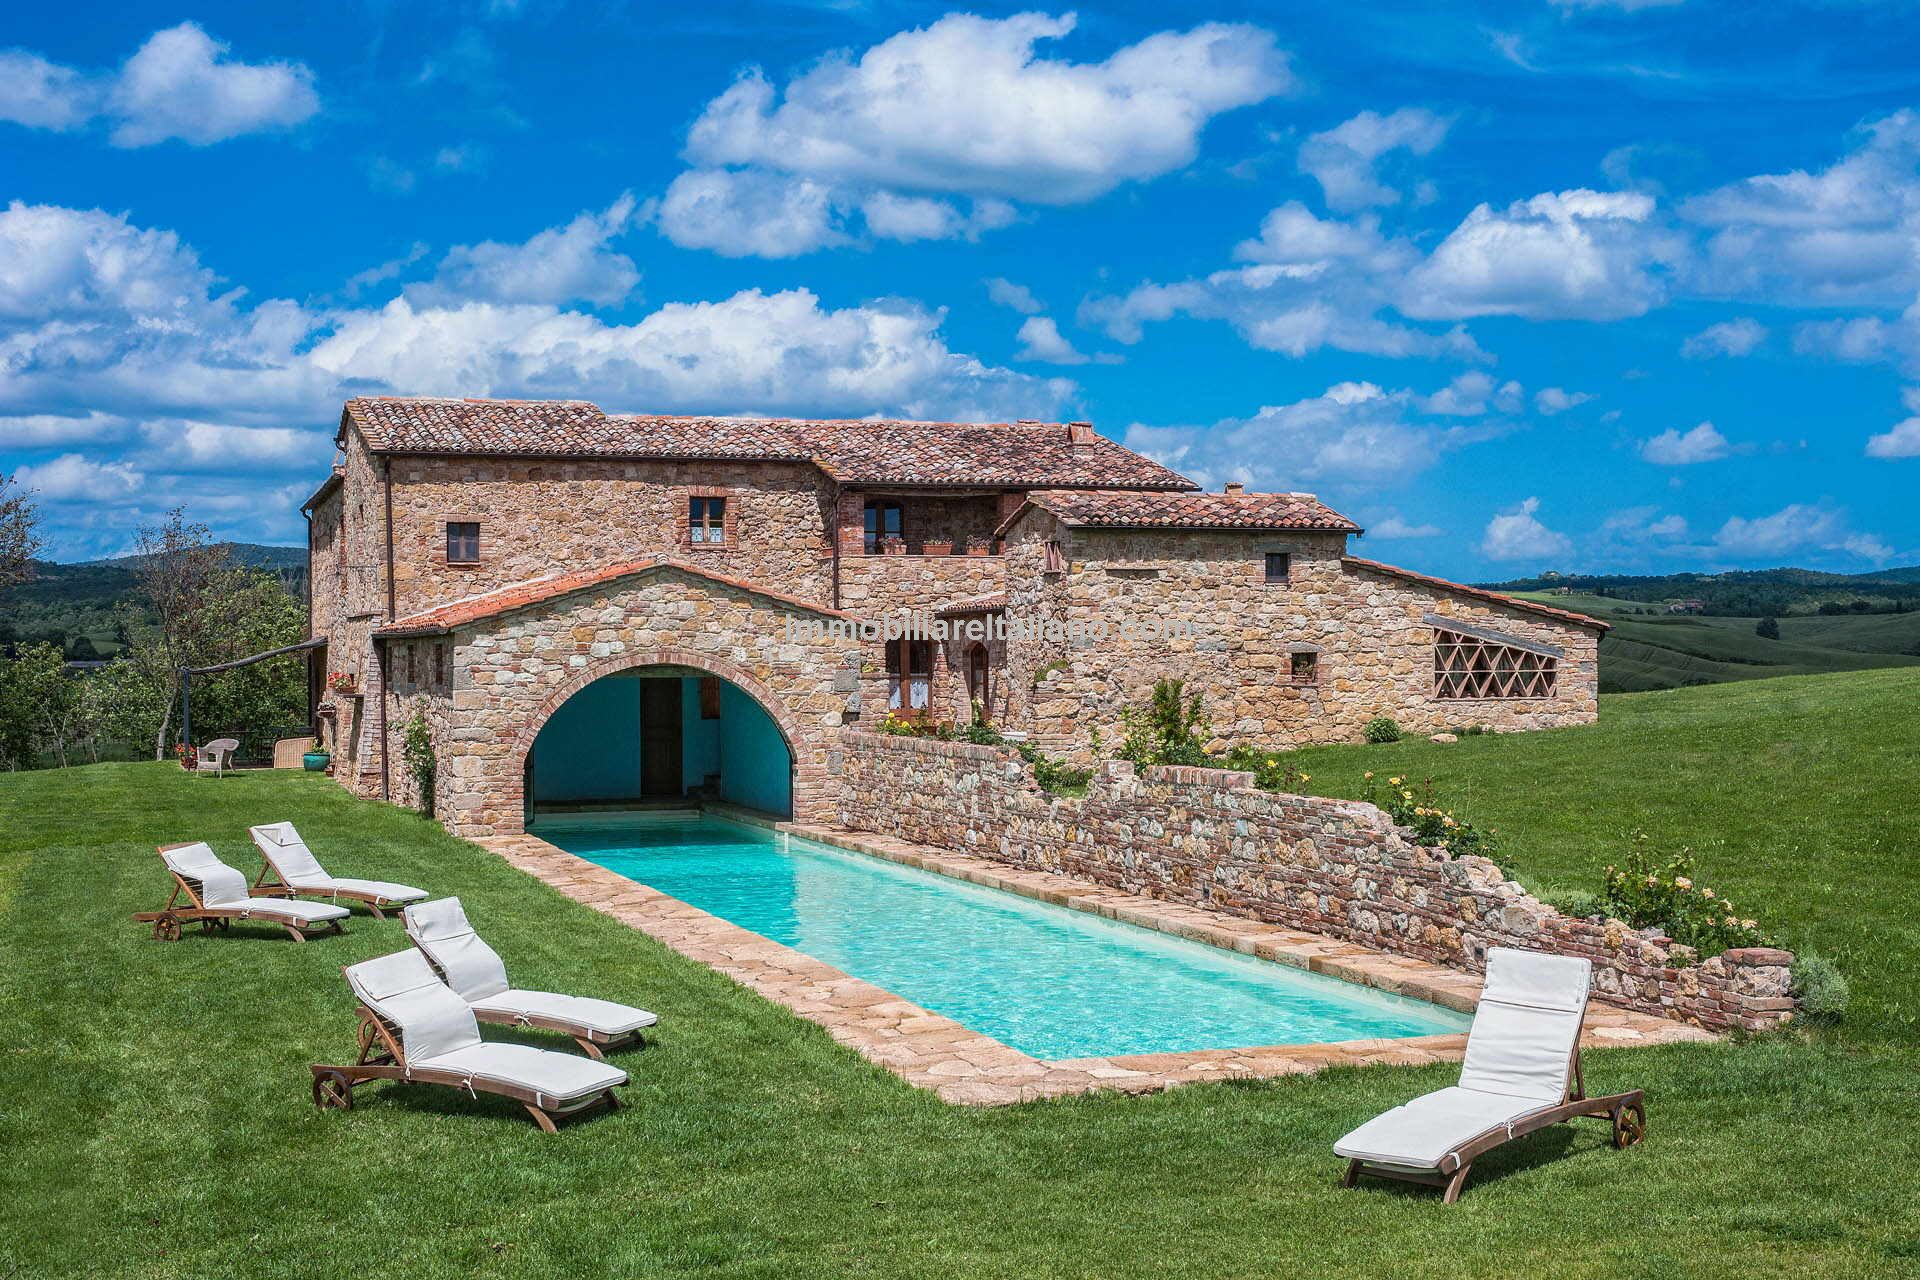 Farmhouse property in Tuscany for sale